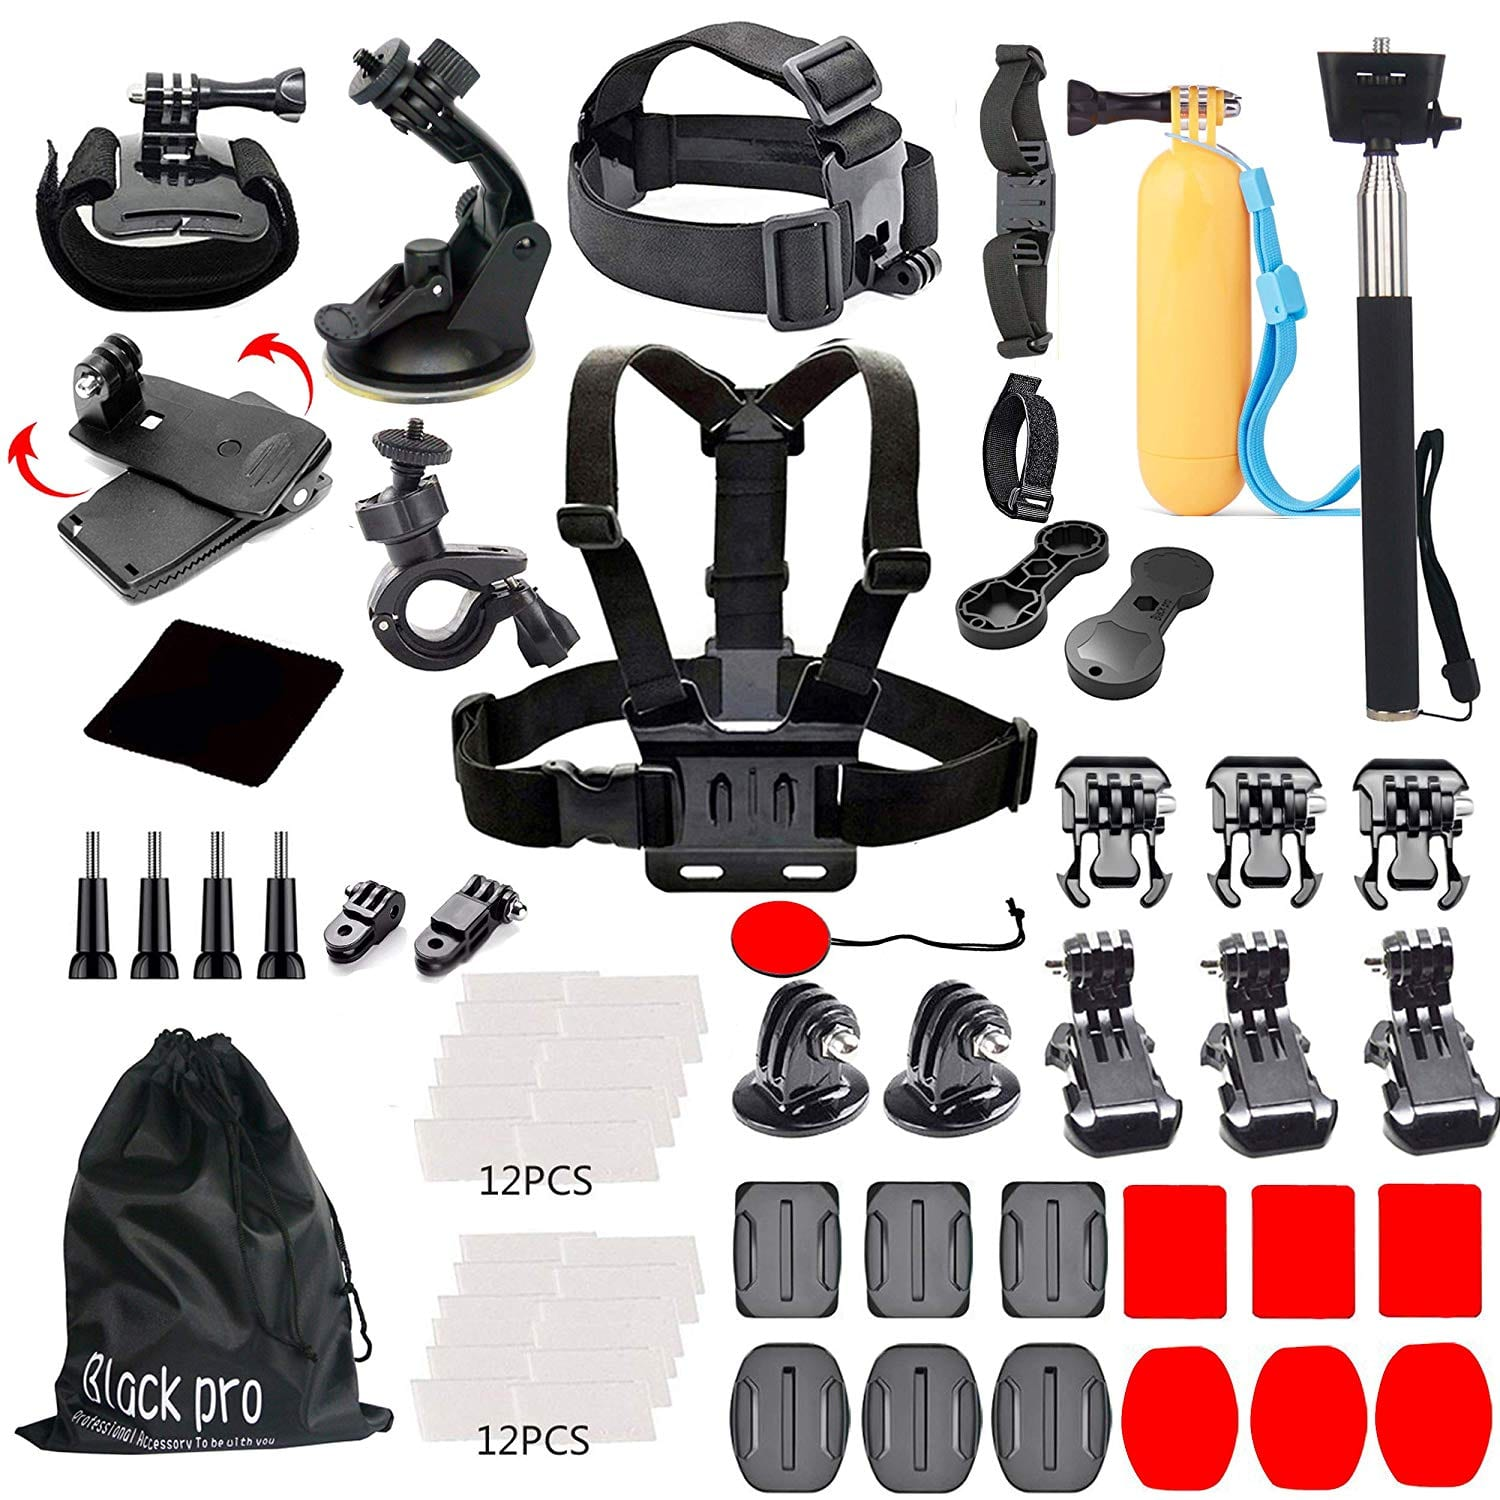 Black Pro Basic Common Outdoor Sports Kit for GoPro Hero 6/ Fusion/ Hero 5/ Session 5/4/3 + 3/ 2/ 1